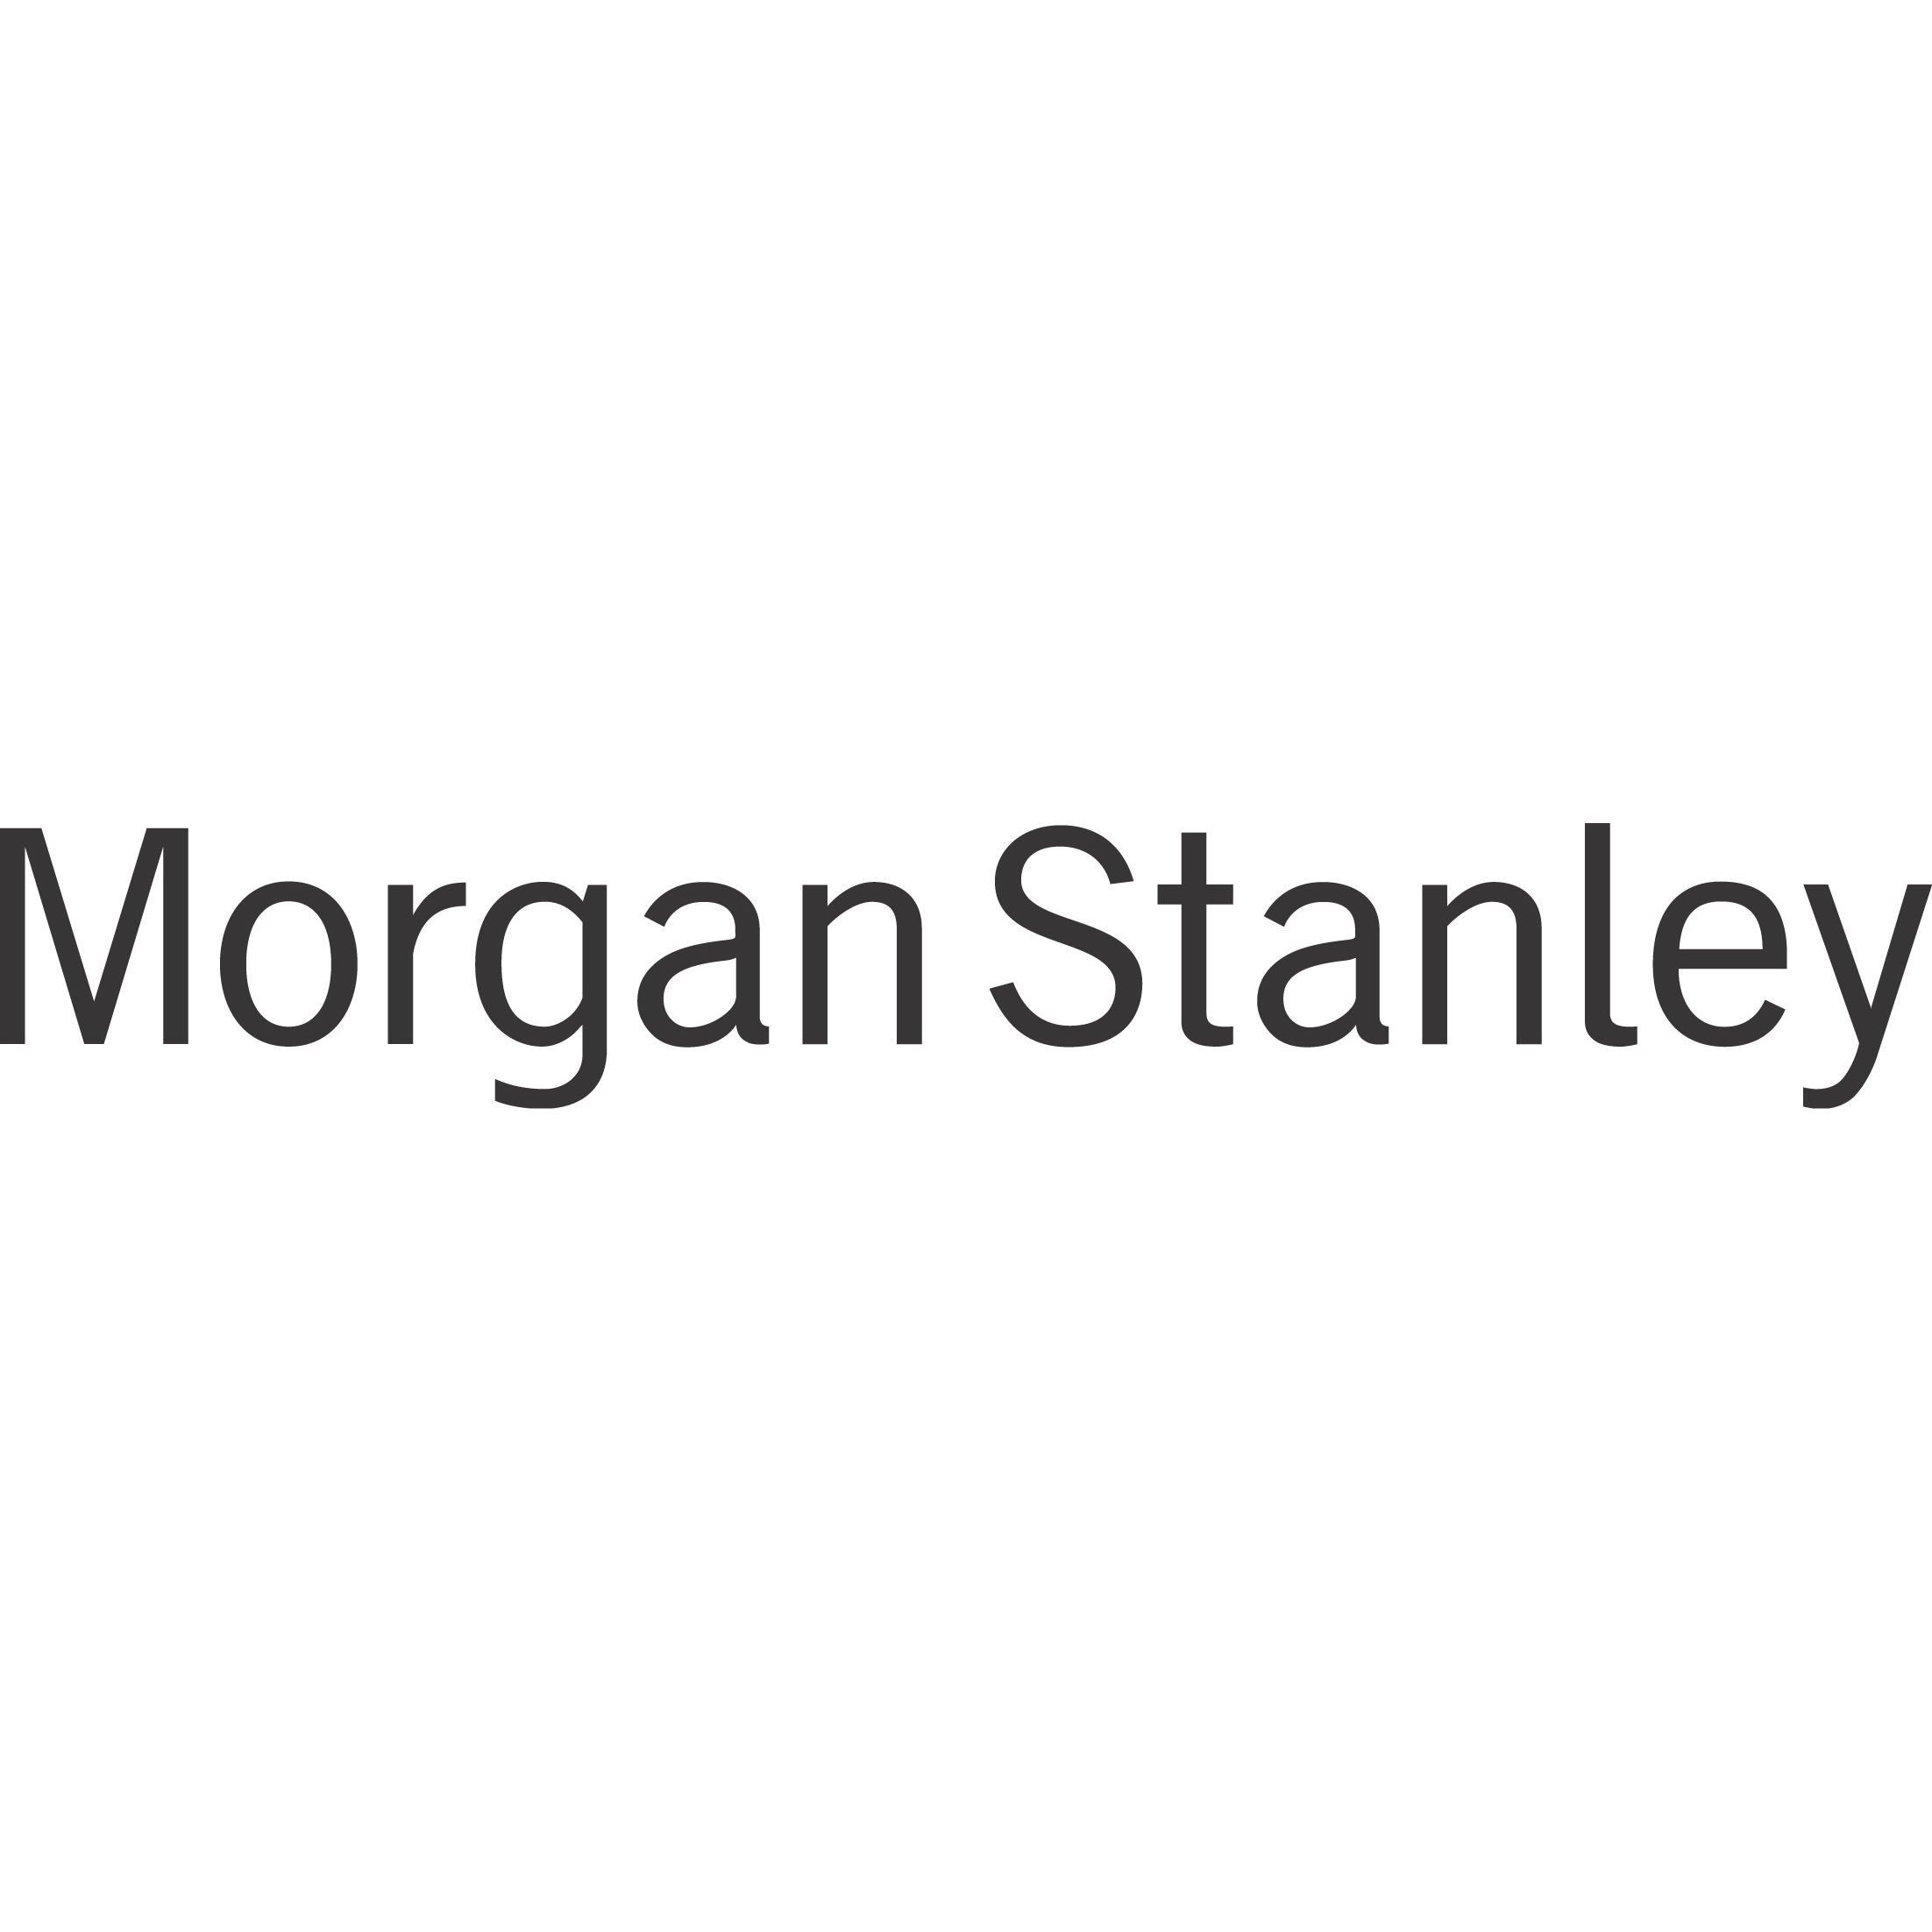 Michael Terry - Morgan Stanley | Financial Advisor in Rancho Santa Fe,California